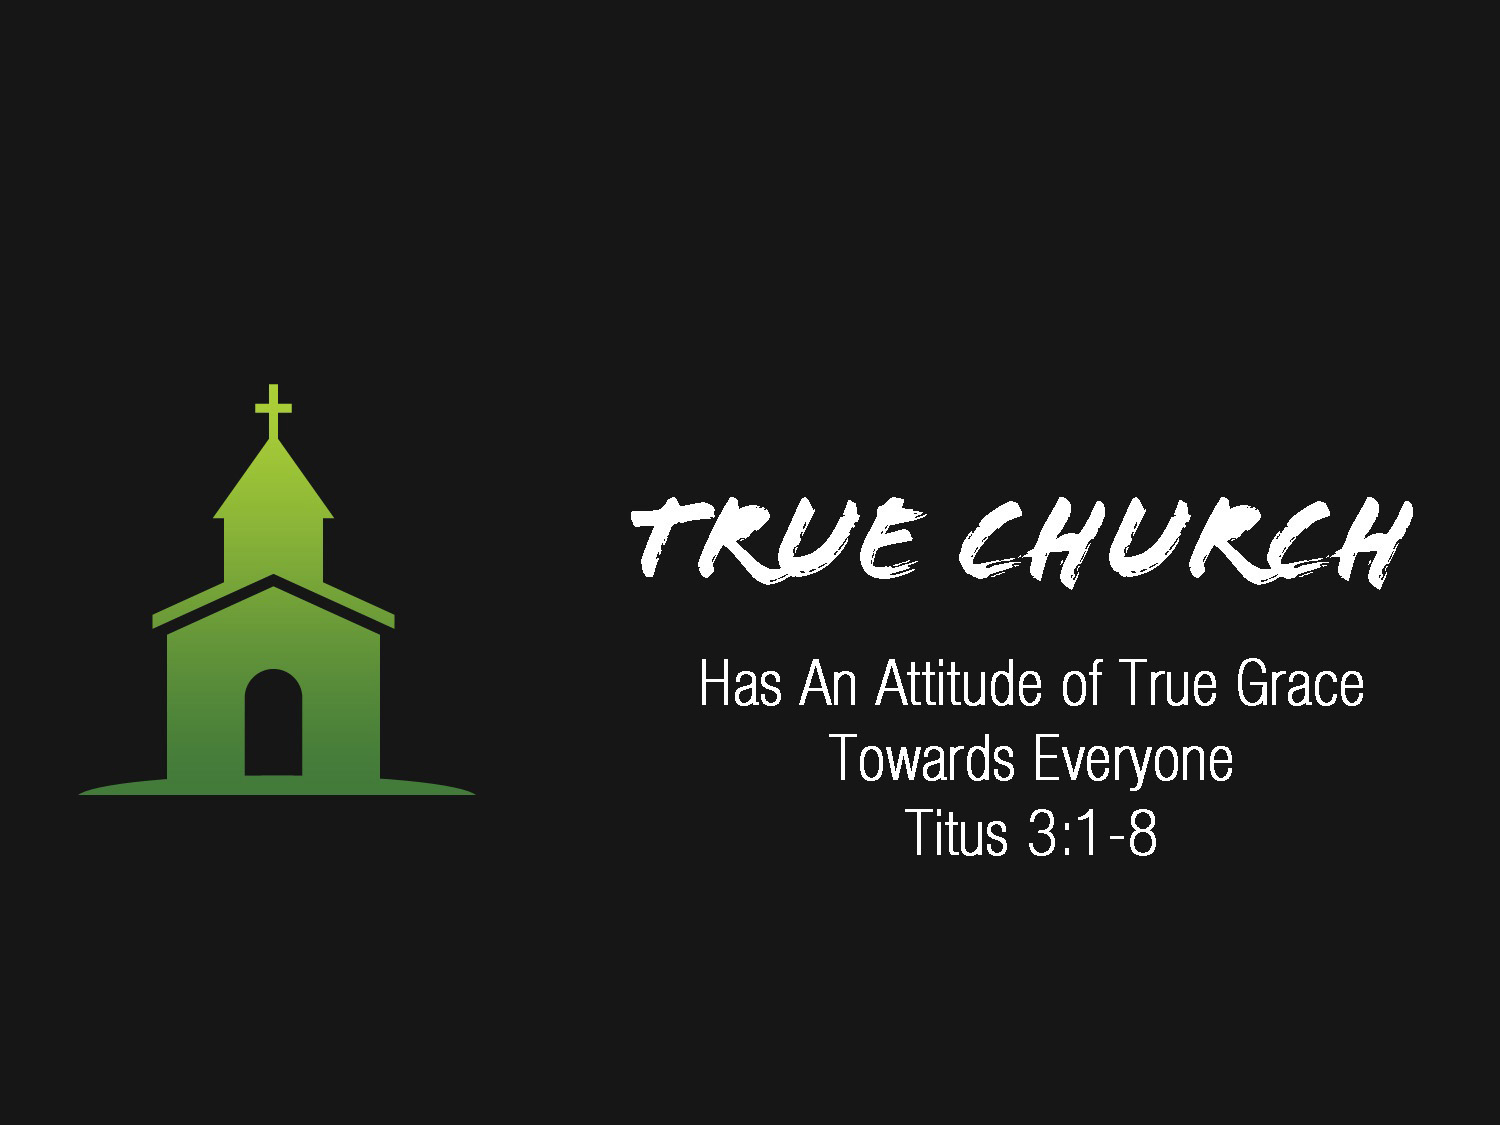 Titus 3v1-8 True Church Has An Attitude of True Grace To Everyone